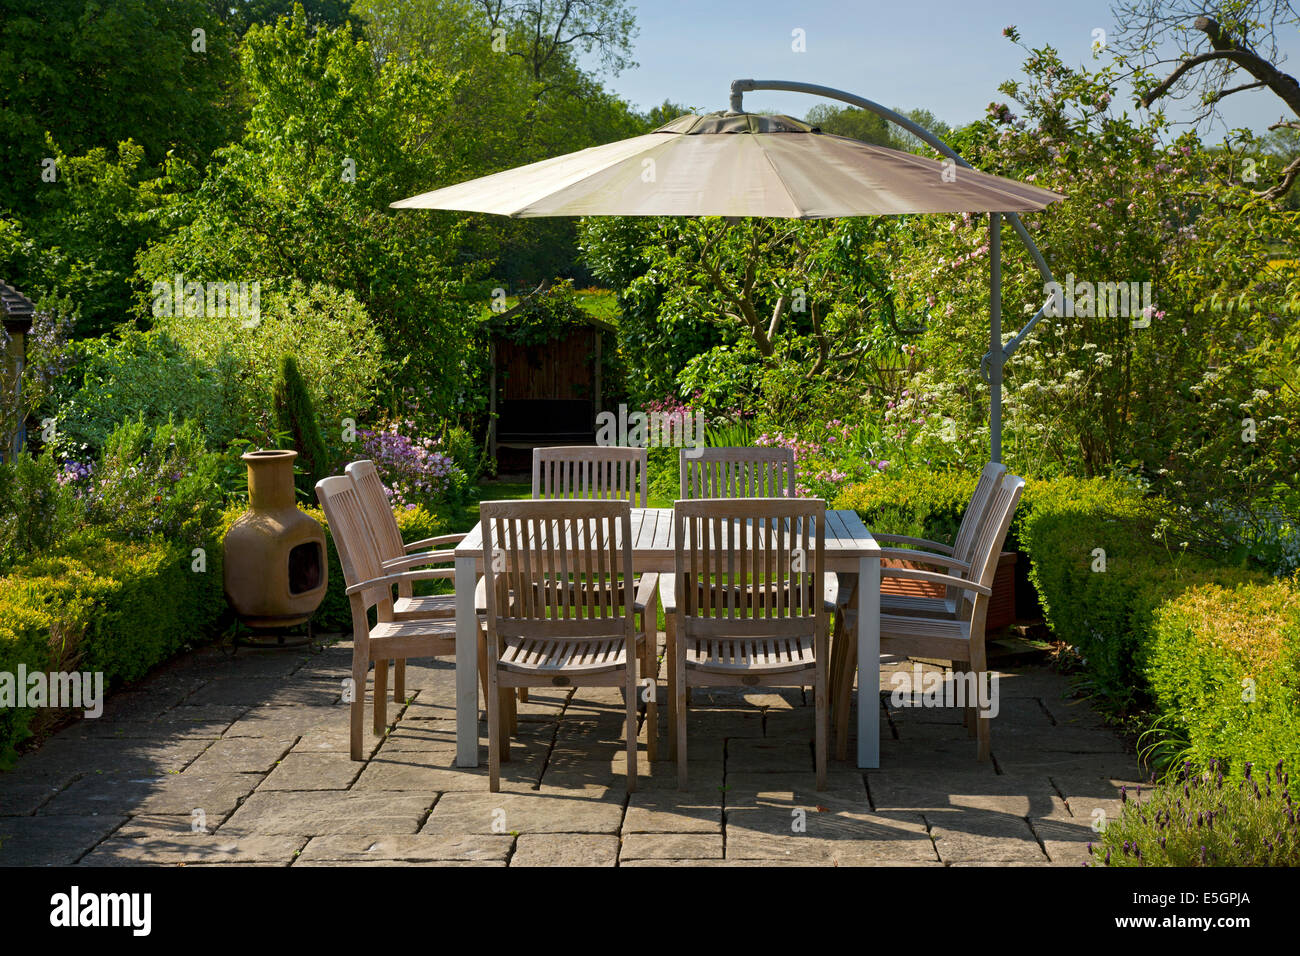 Outdoor eating area with table and chairs in English summer garden - Stock Image